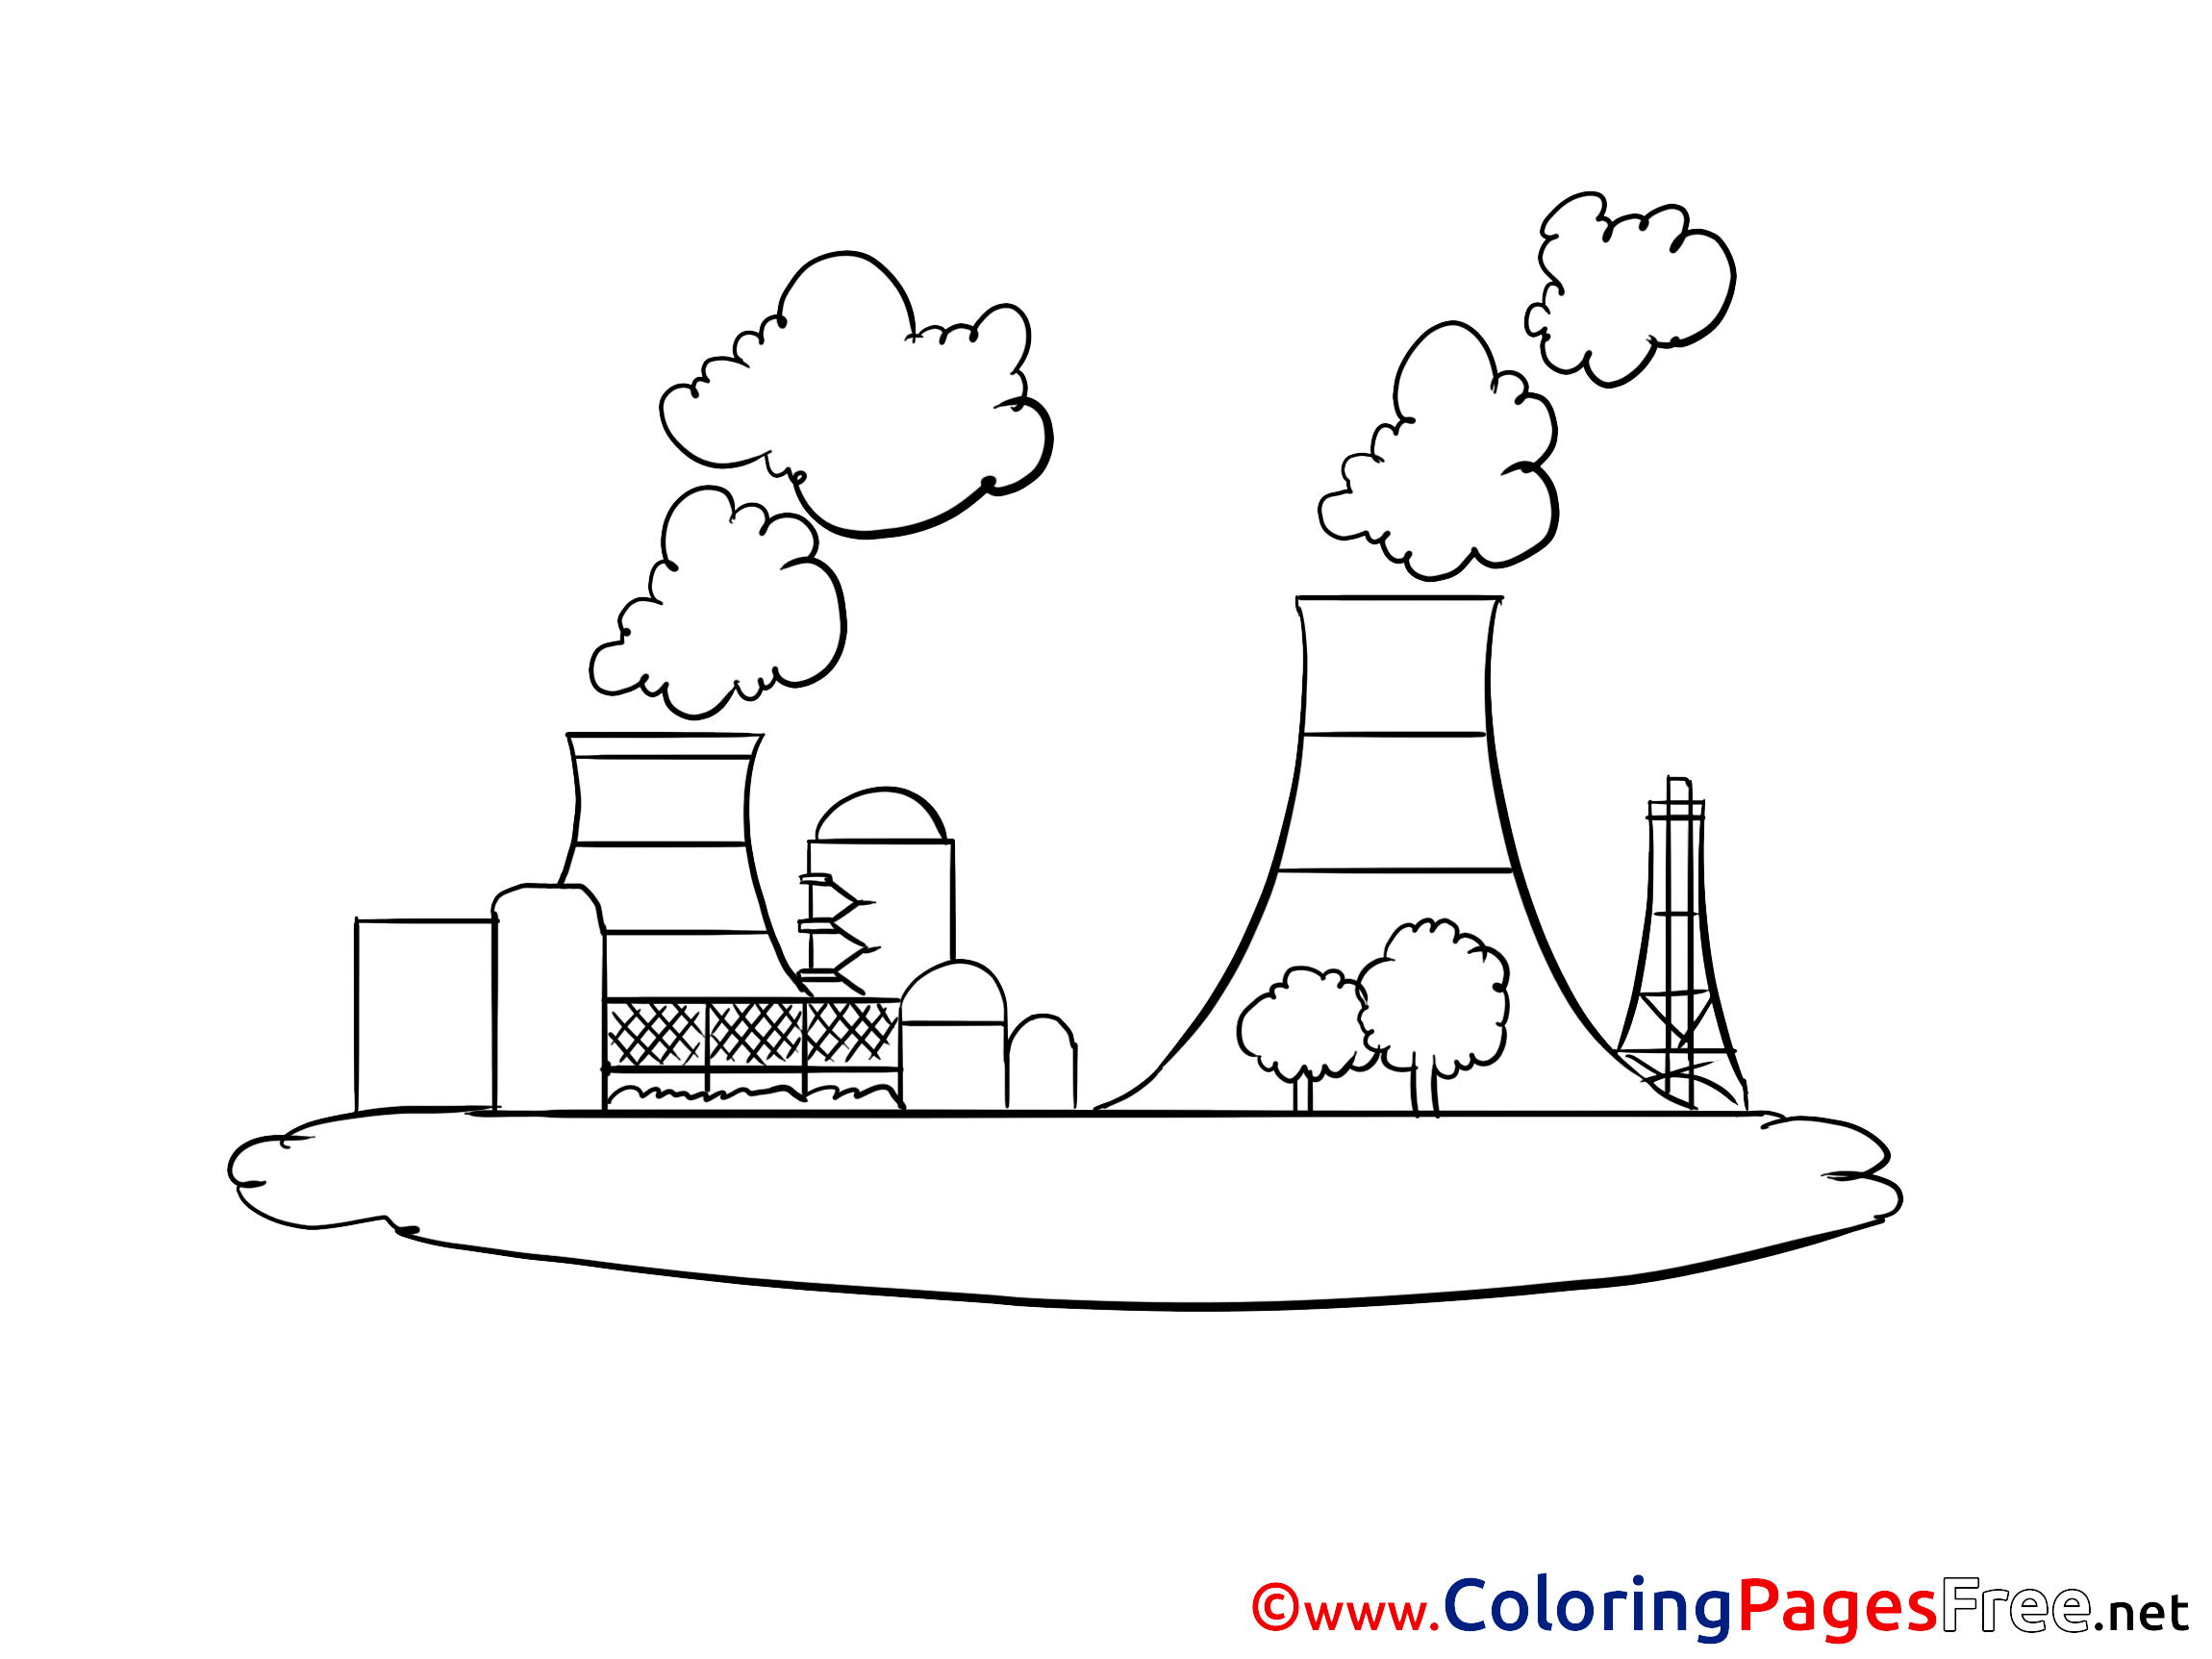 Nuclear Power Plant for Children free Coloring Pages